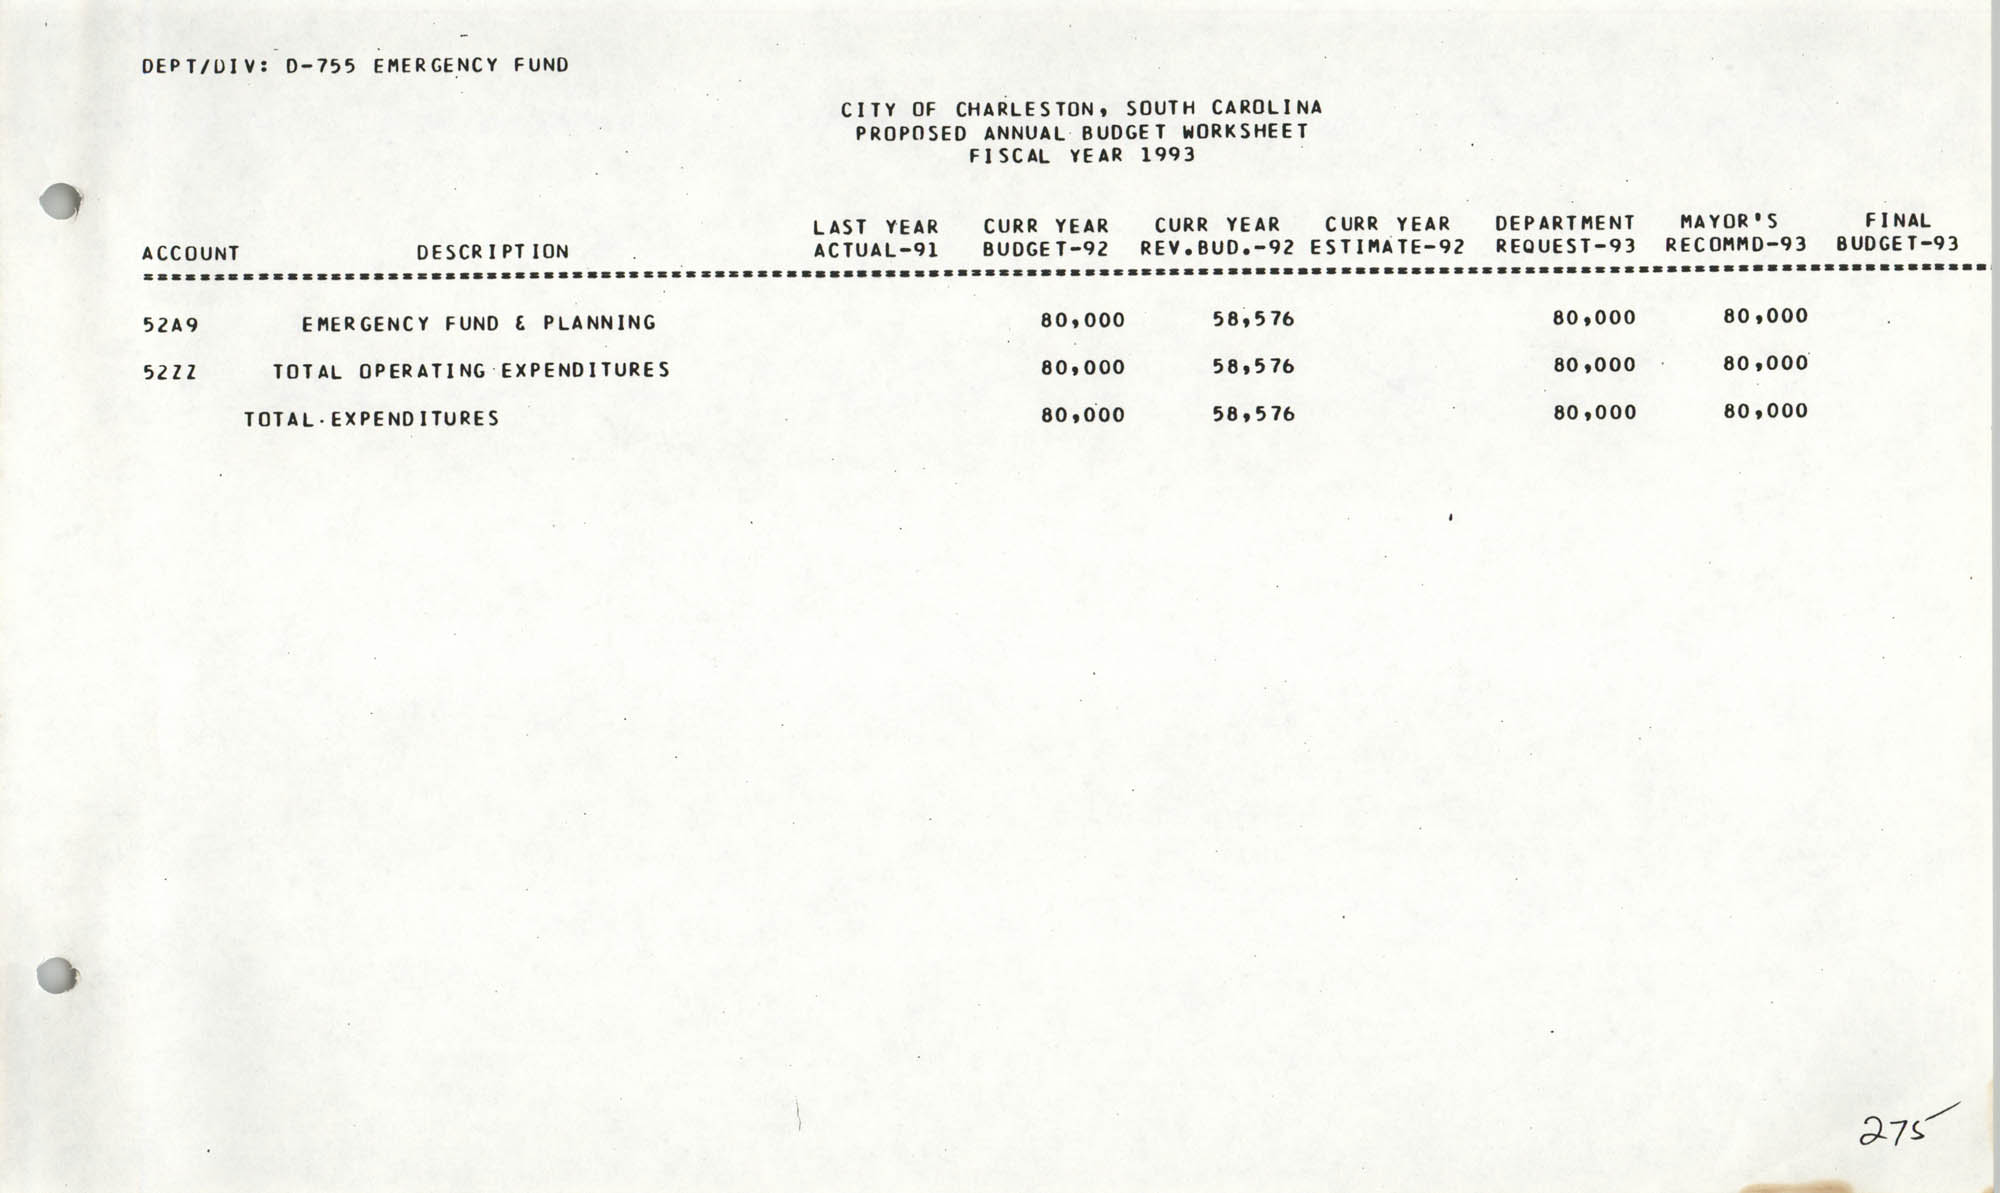 The City Council of Charleston, South Carolina, 1993 Budget, Page 275